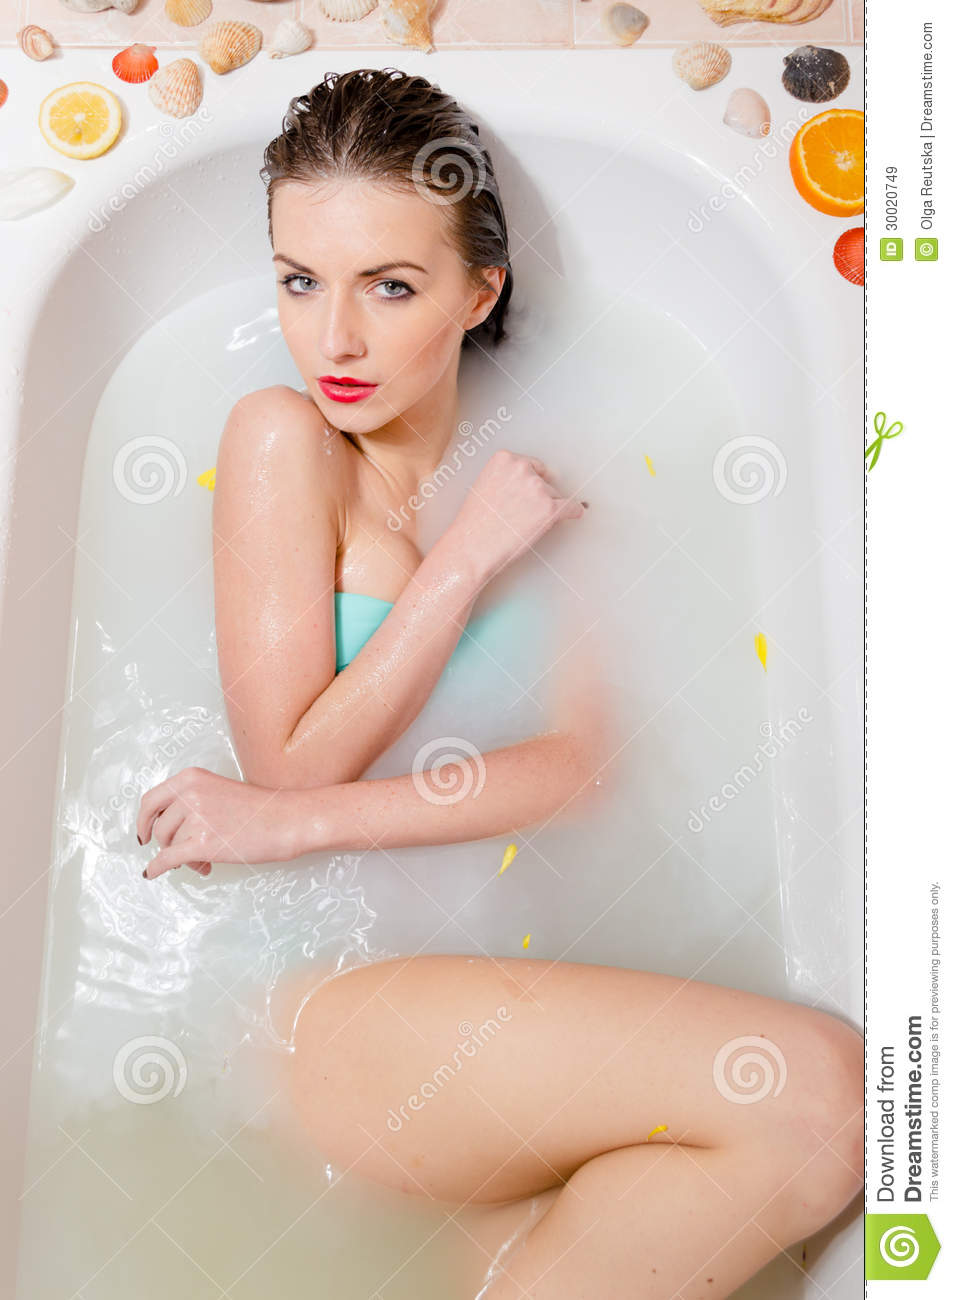 Pretty Woman Relaxing In Milk Bath With Flowers Royalty Free Stock.